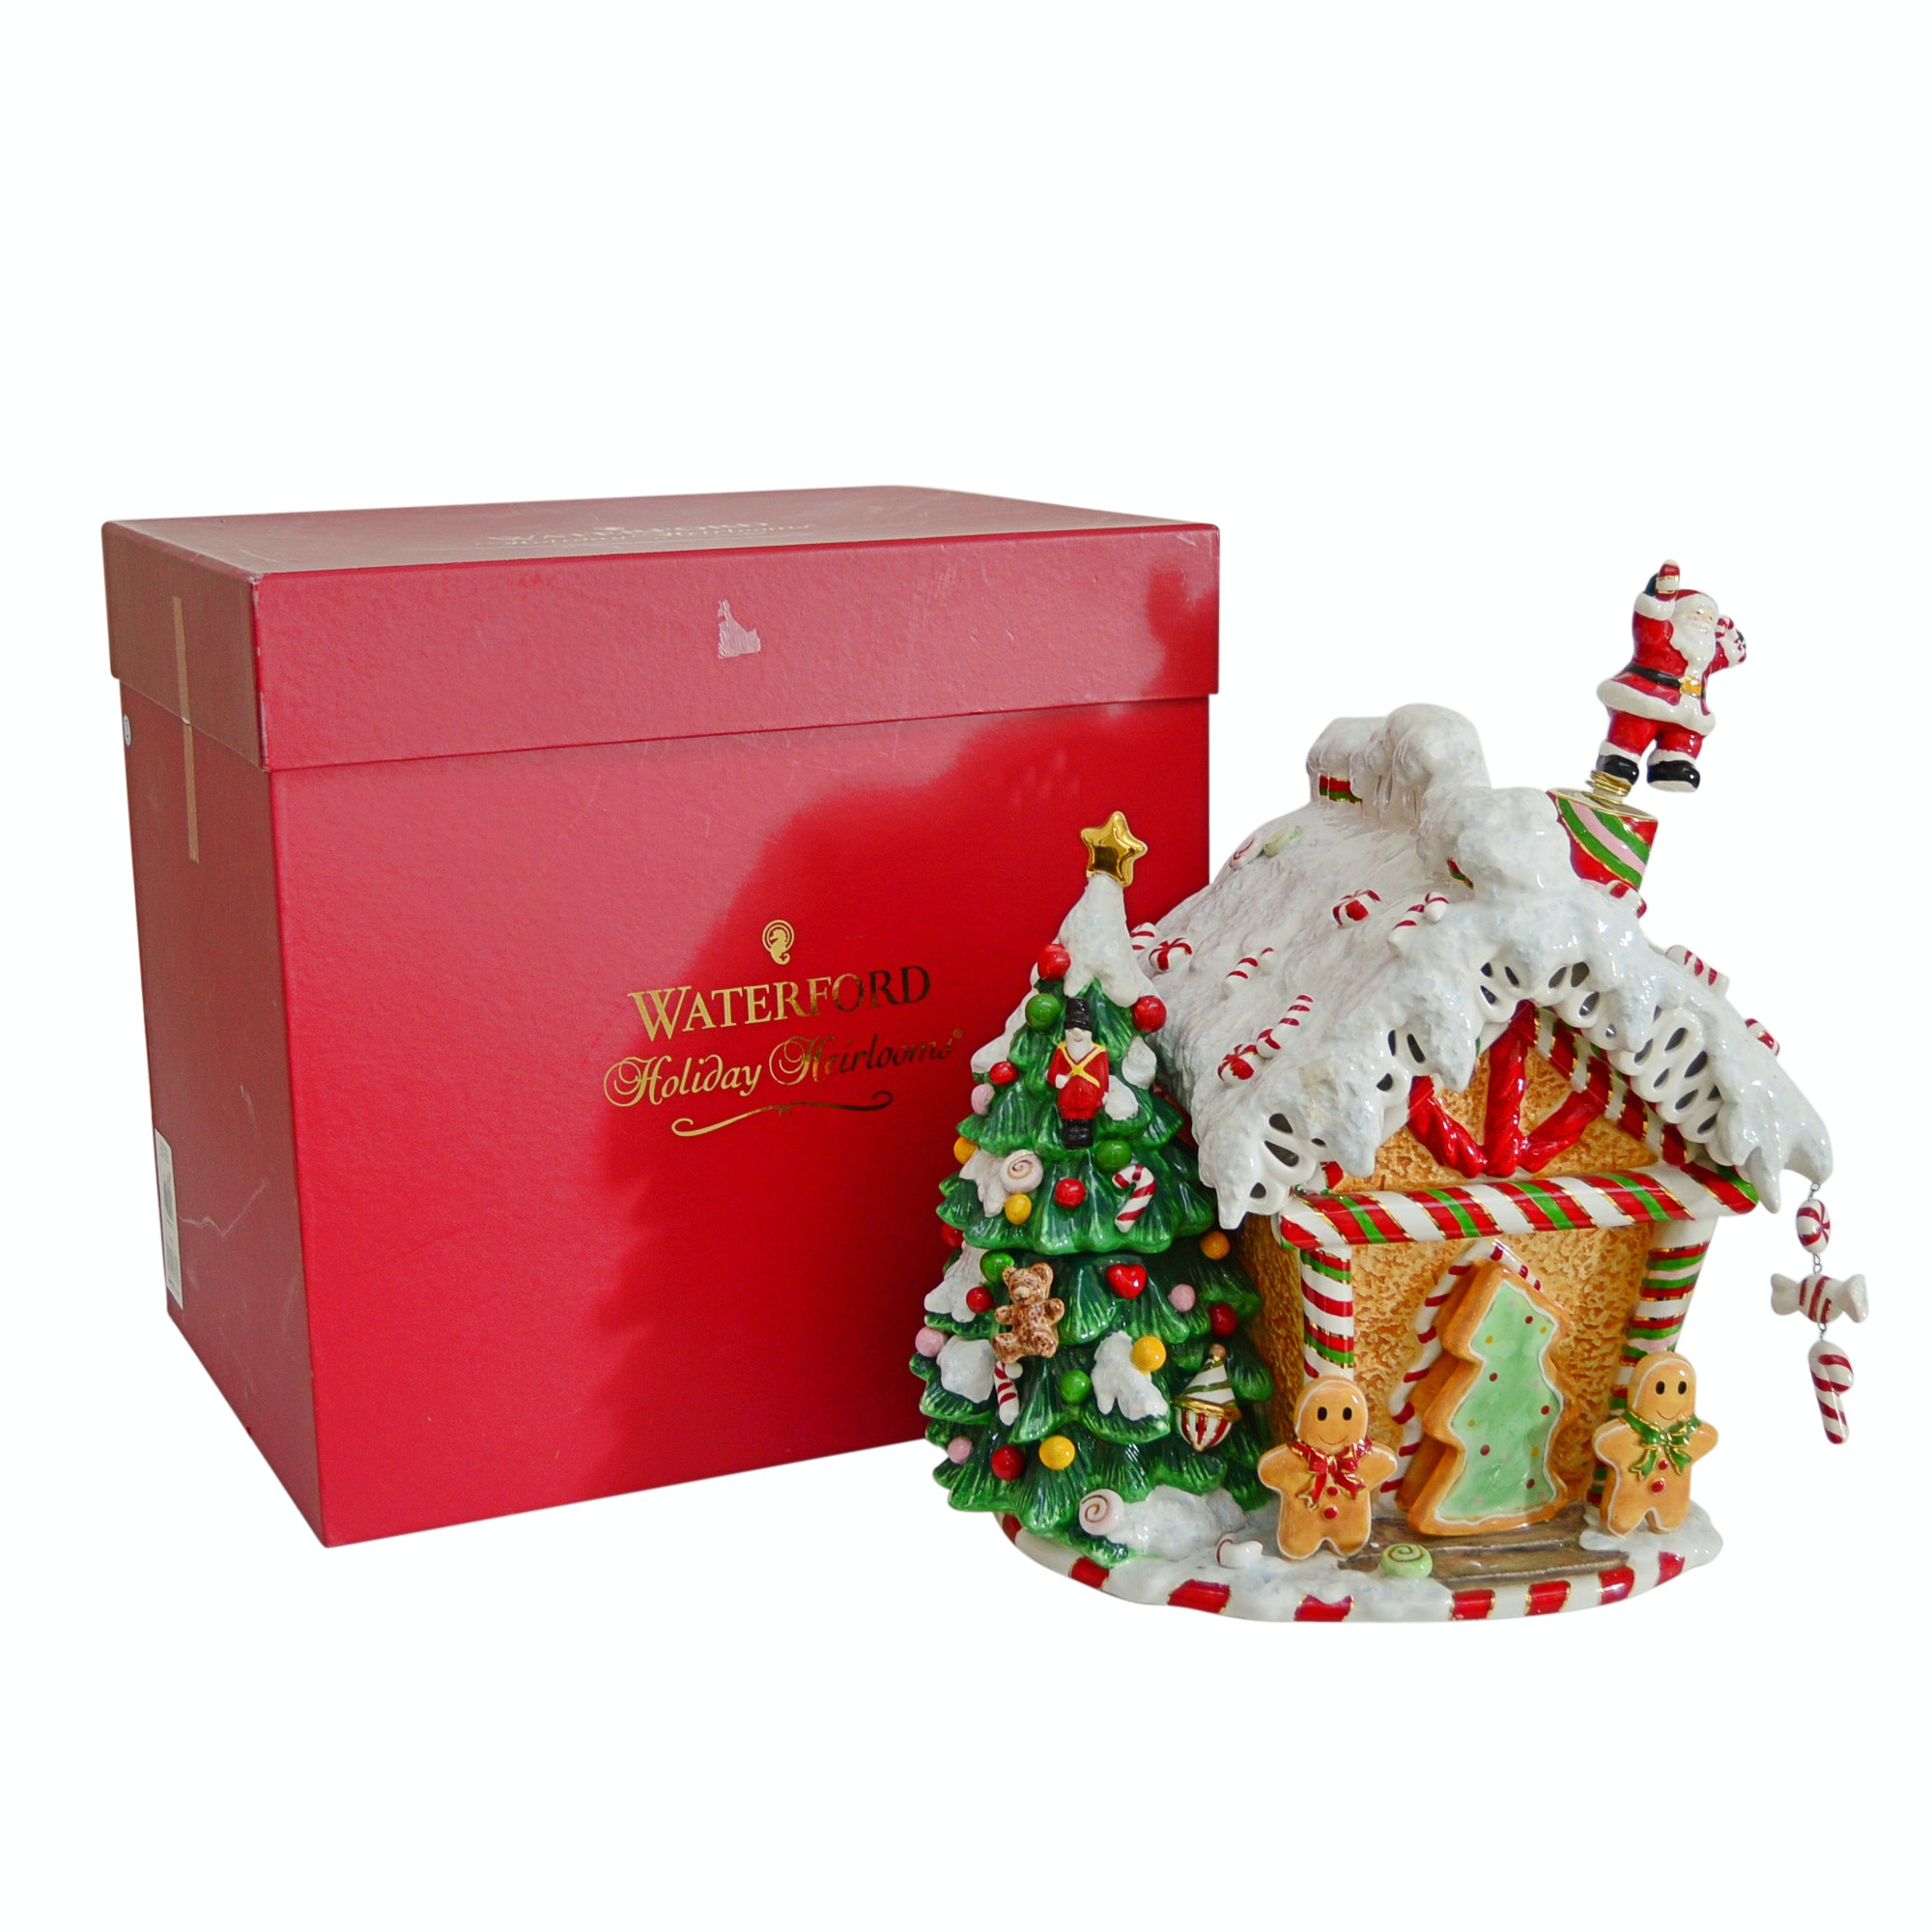 Waterford Holiday Heirloom Gingerbread House Cookie Jar